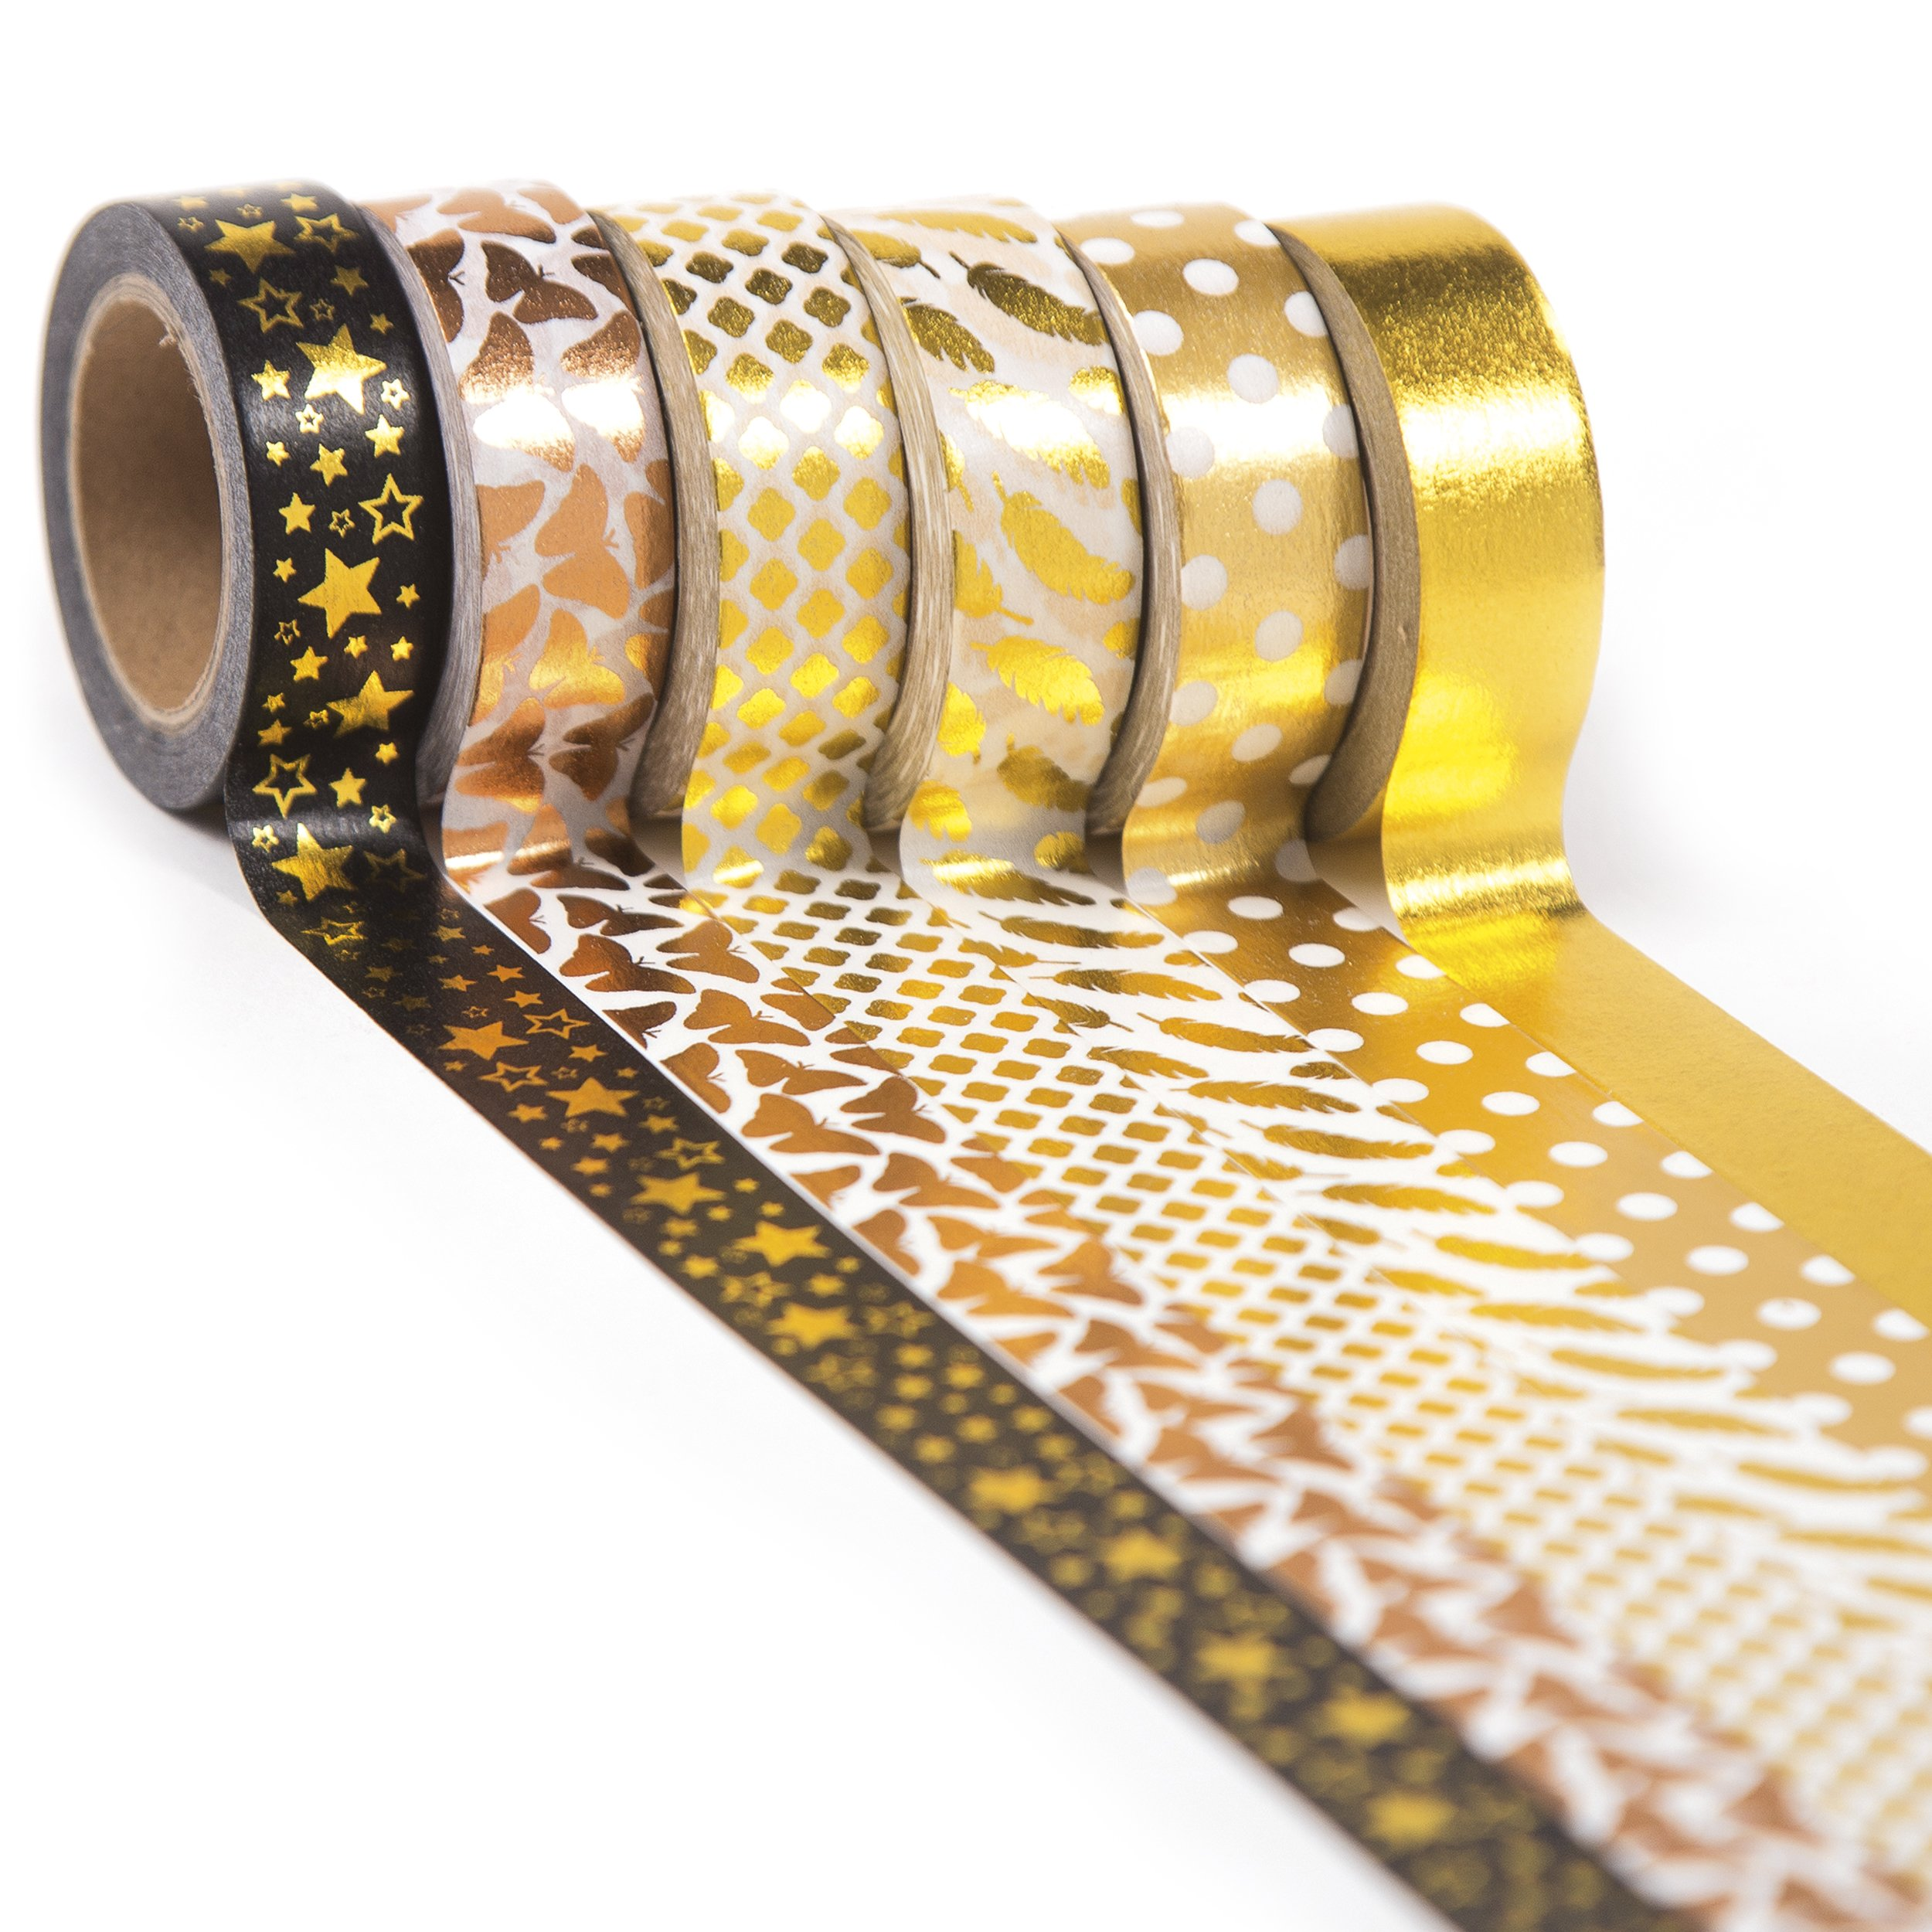 Gold Washi Tape Set 6 rolls, Decorative Craft Tapes Kit of Cute Patterns for Scrapbooking, DIY Projects by CRAFTISS